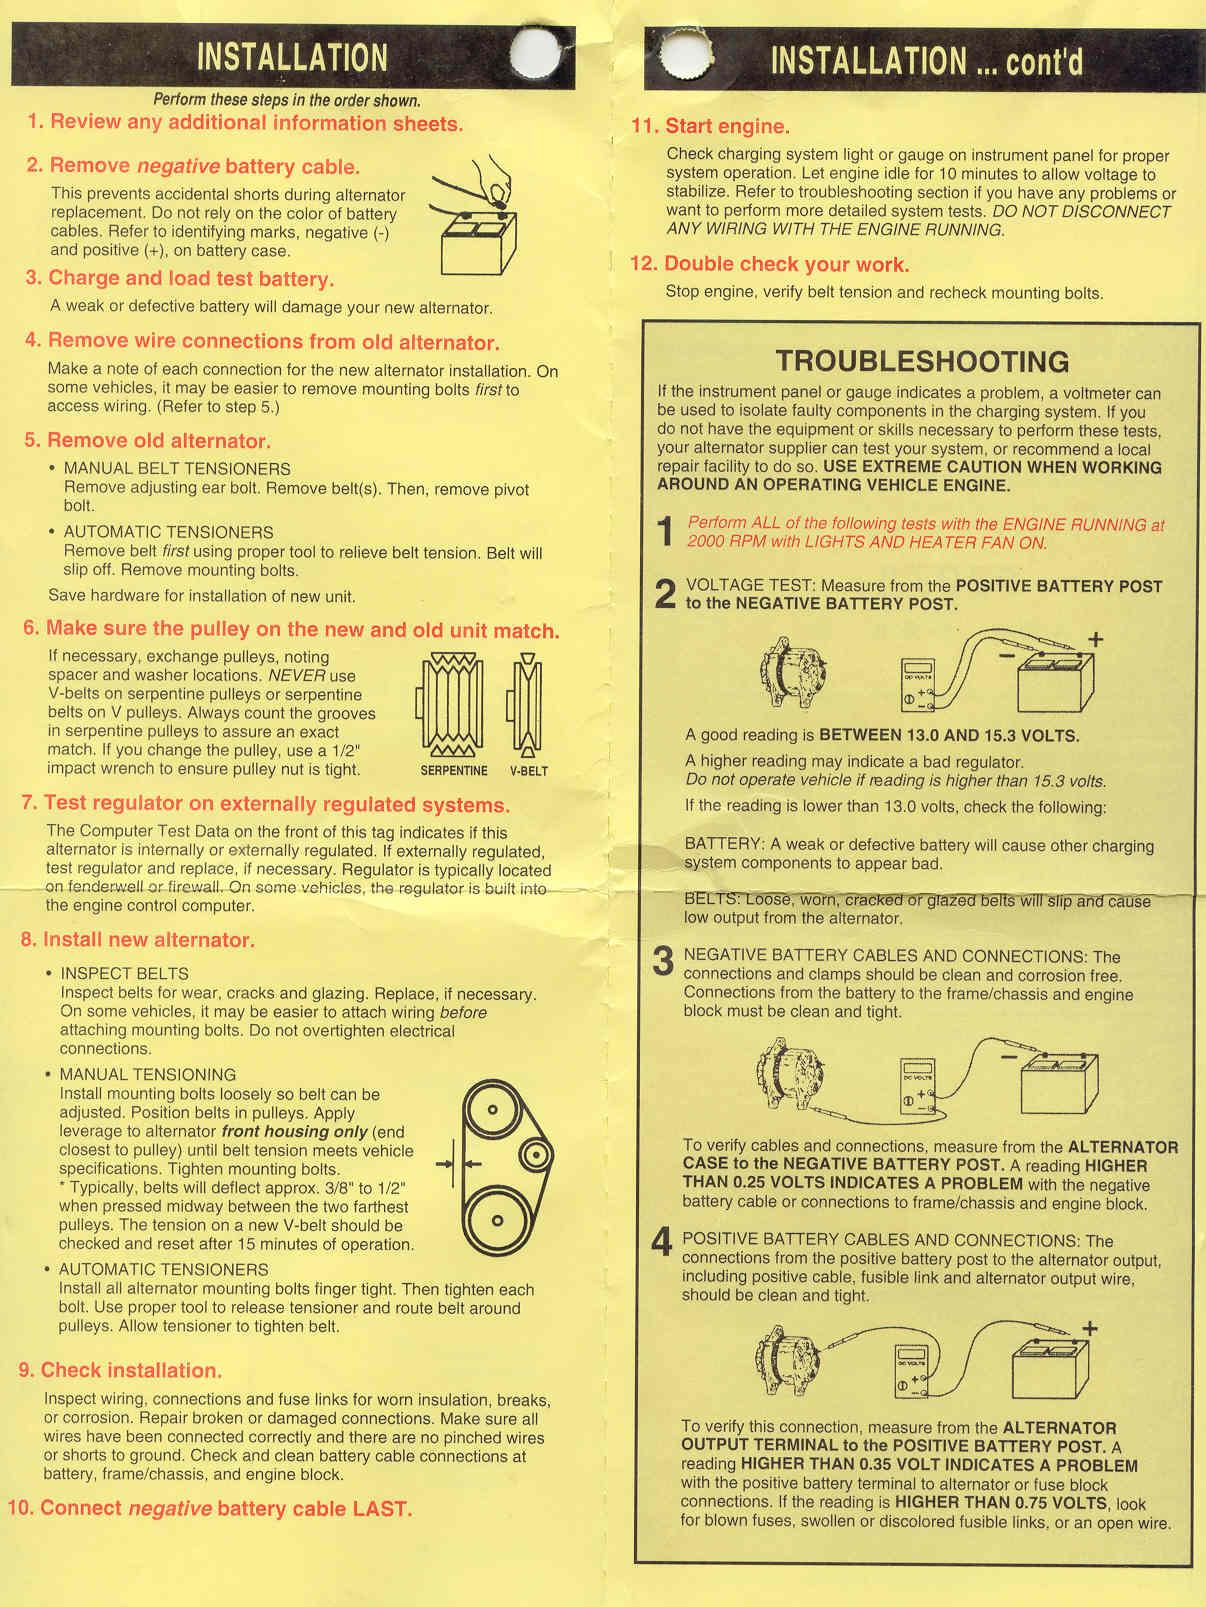 Changing The Alternator Amp Gauge Mounting Problems Note